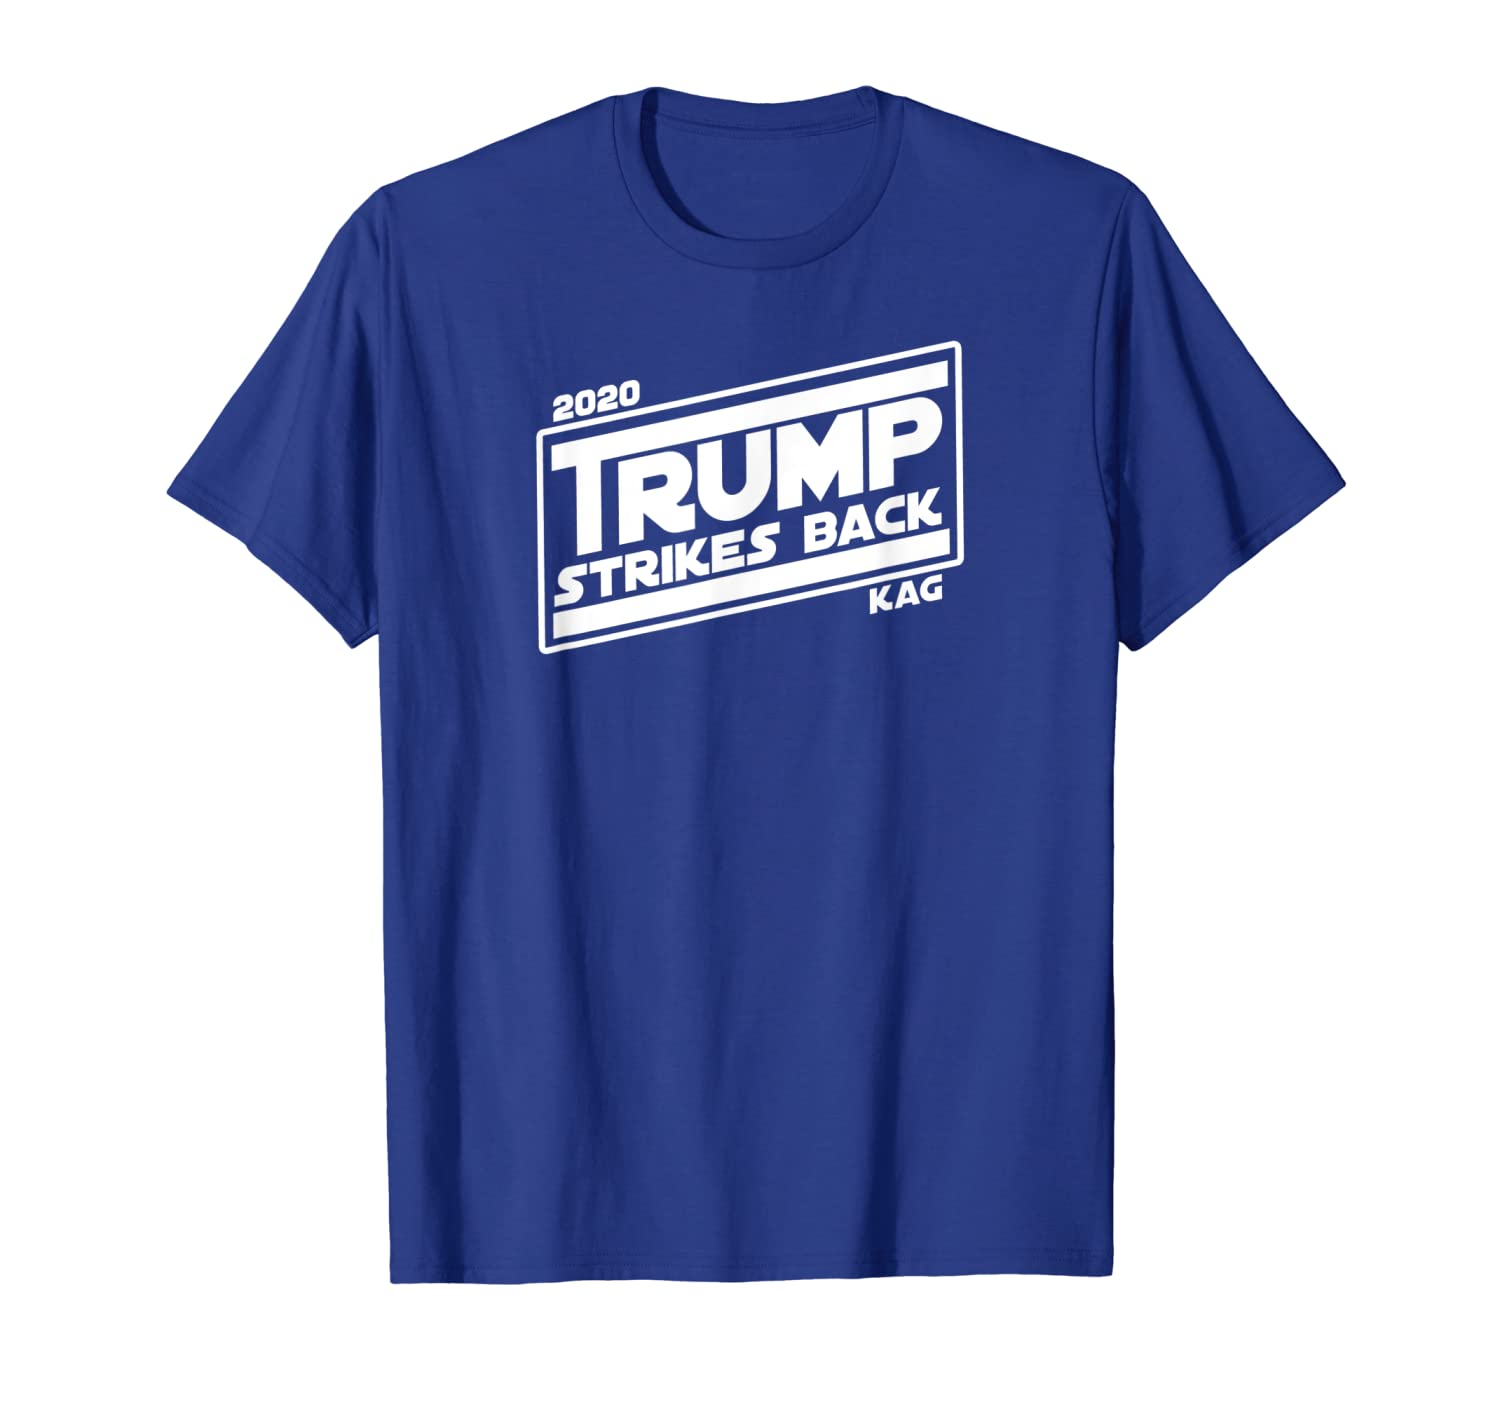 2020 TRUMP STRIKES BACK KAG Funny Political T-shirt Ver. 1W-TH